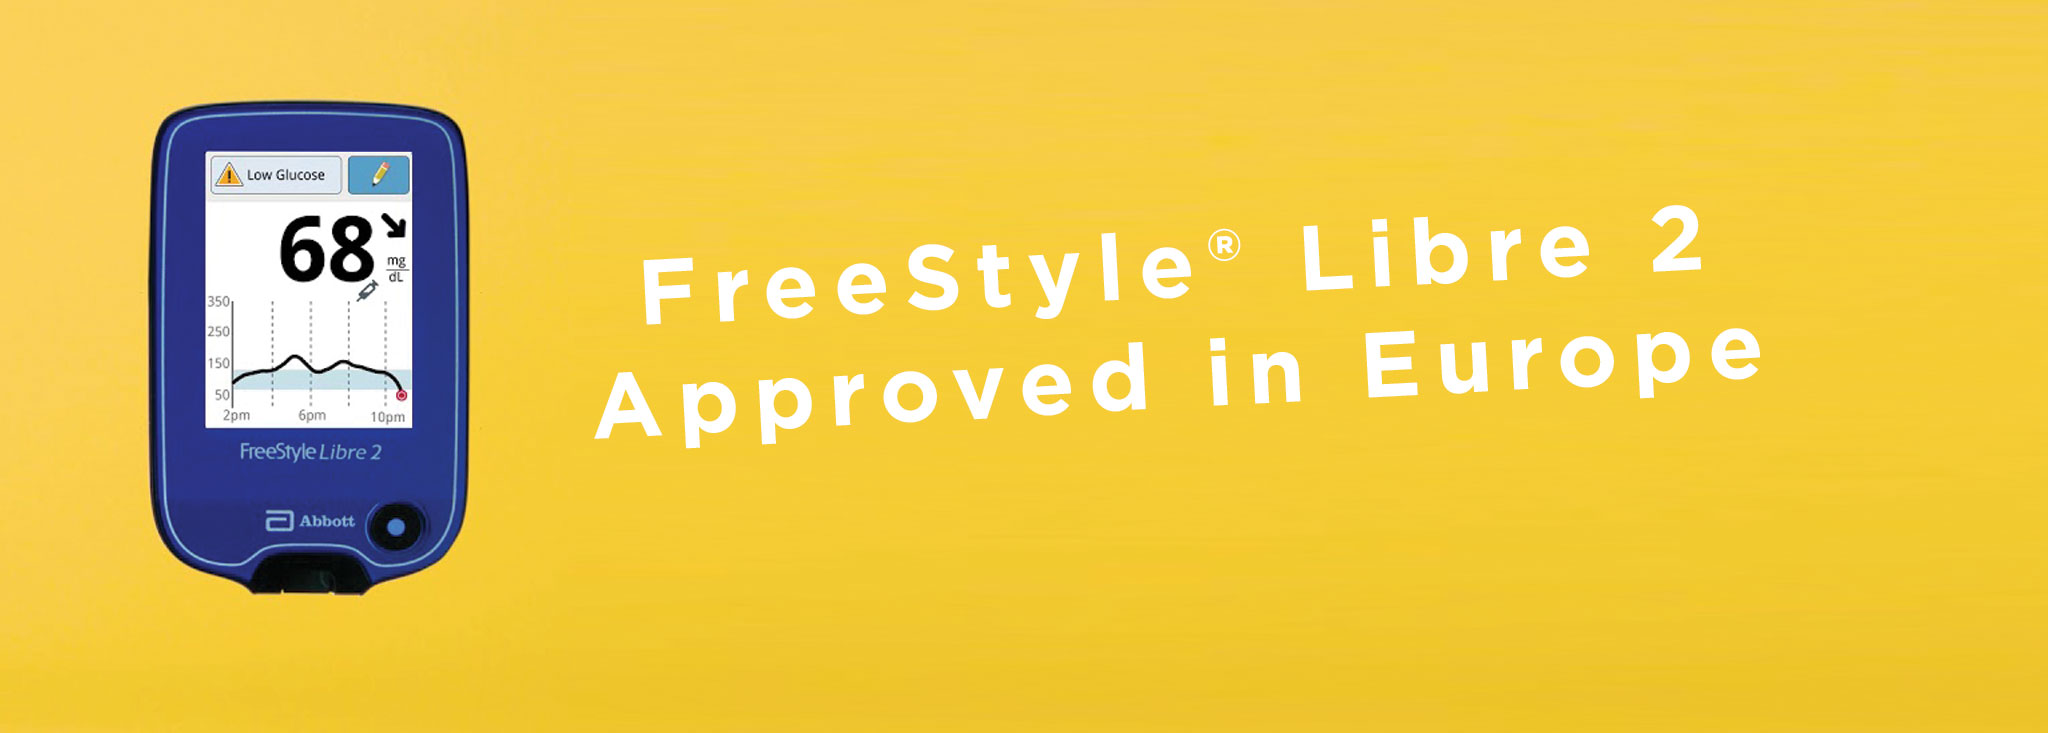 Abbott Freestyle Libre Abbott S Freestyle Libre Gains Ce Mark In Europe